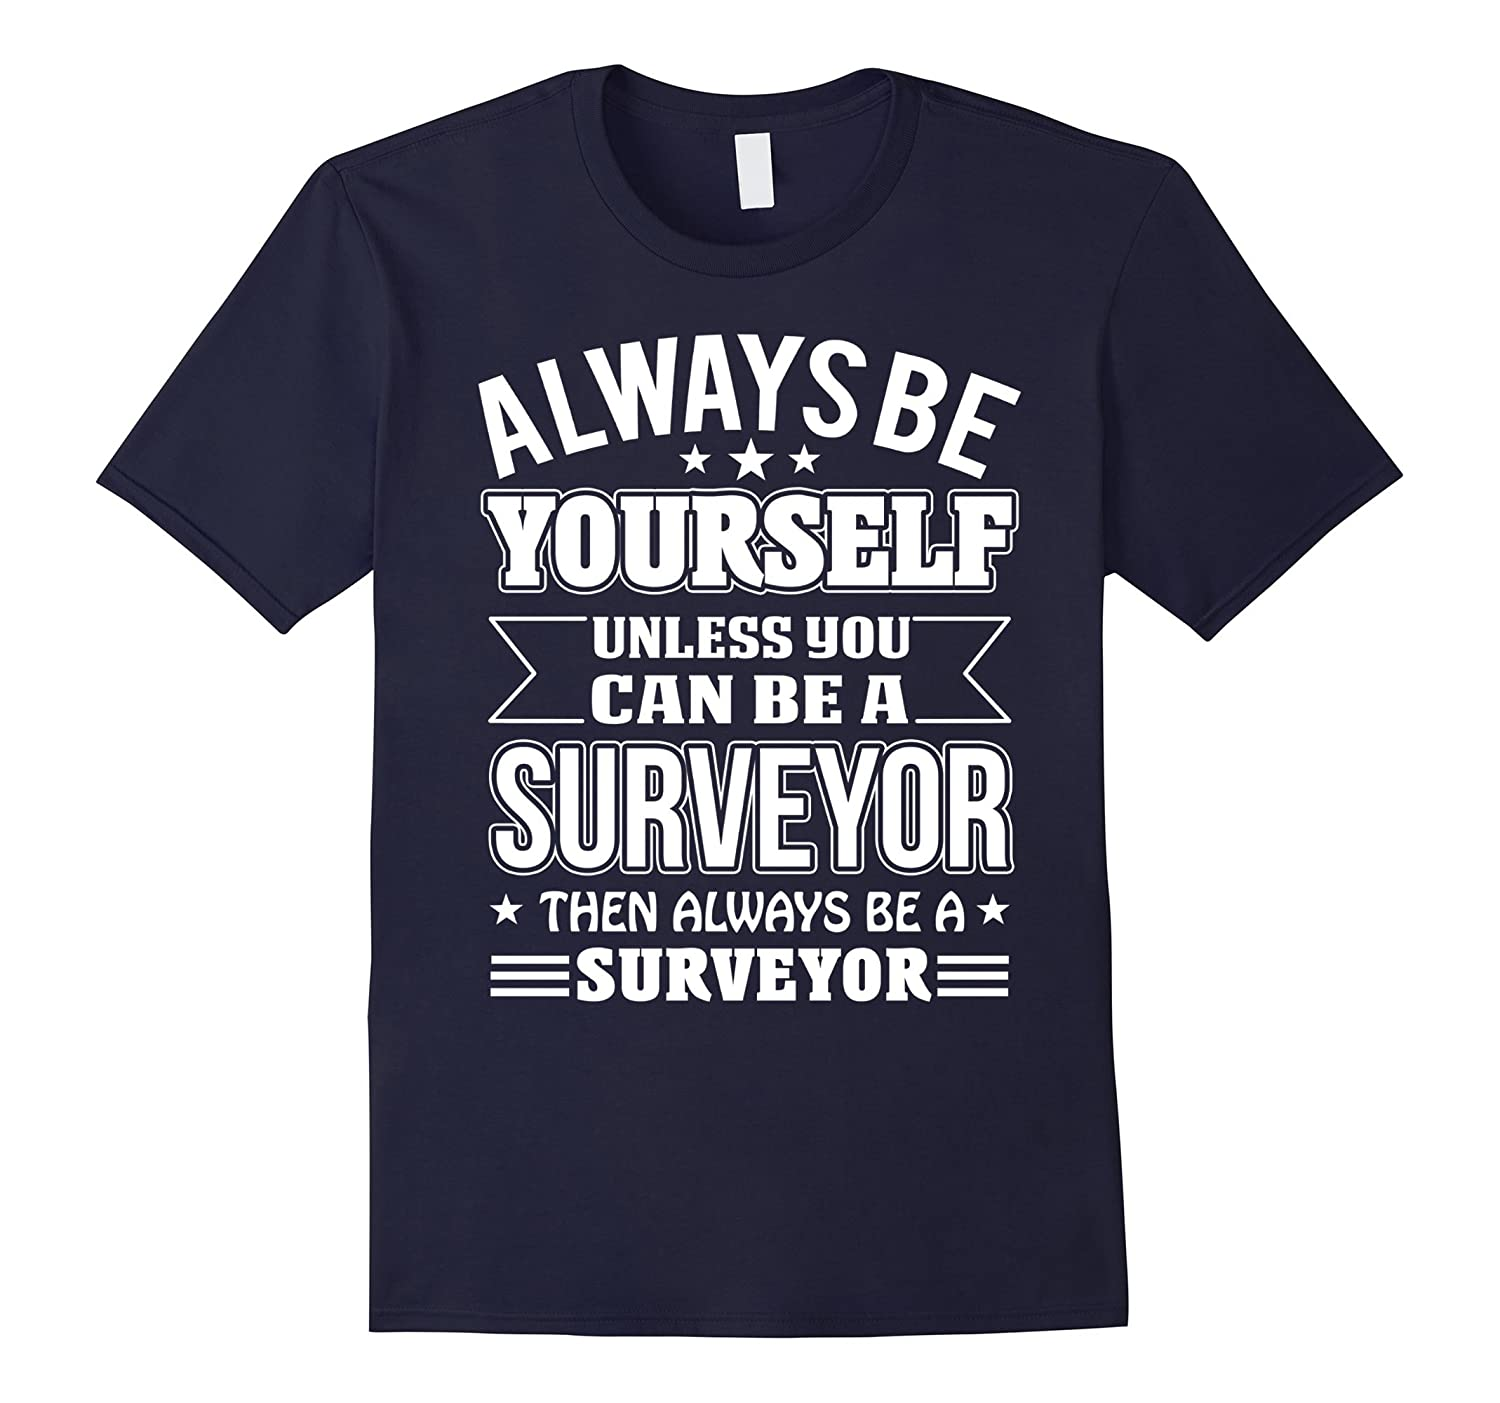 Always Be A Surveyor T-shirt Unless You Can Be A Surveyor-TD